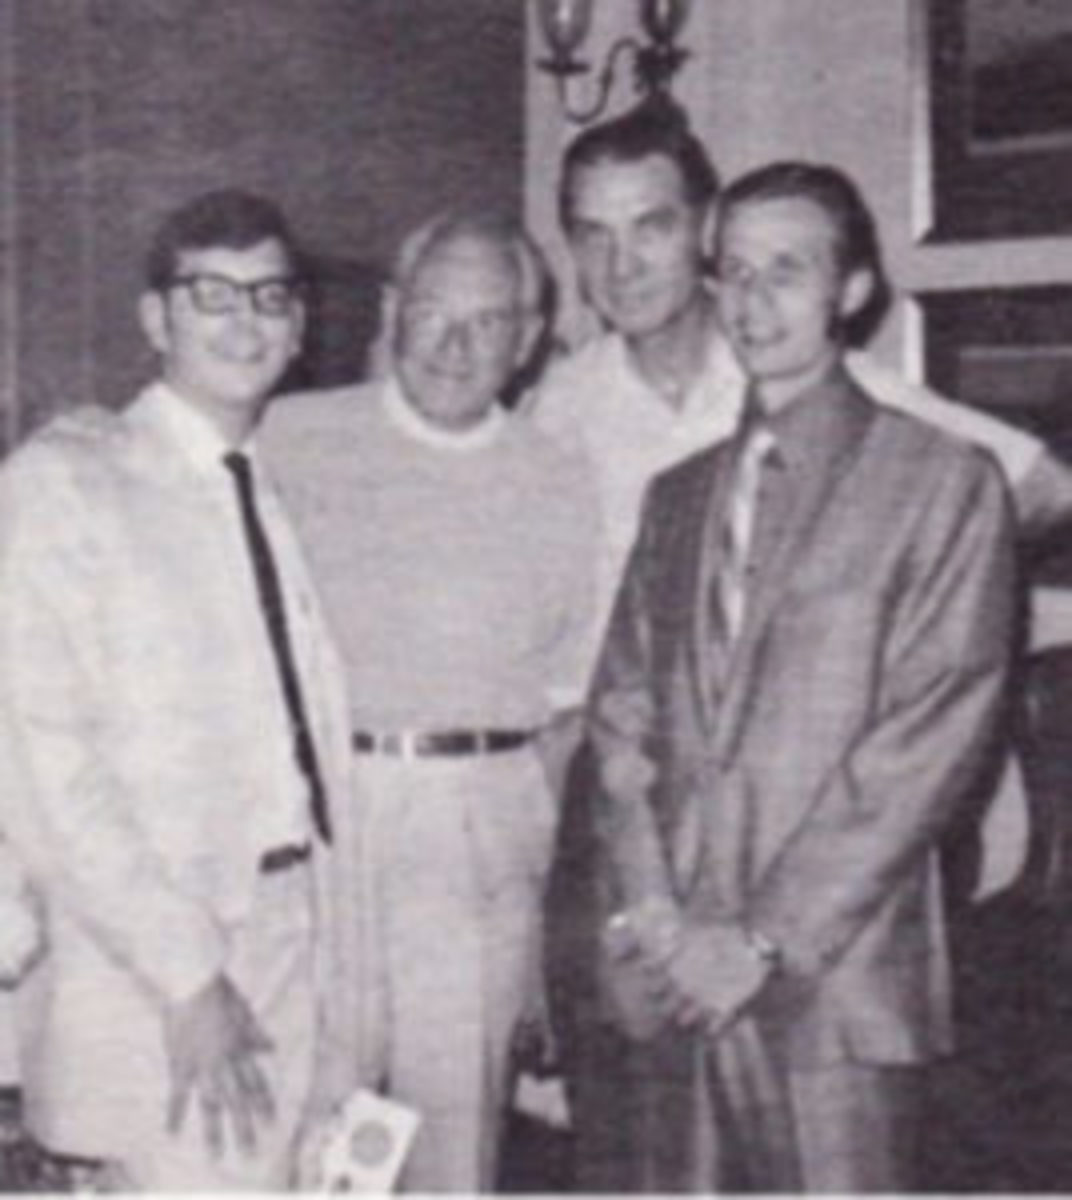 Pat Quinn (right) was the sharp-dressed man chasing the autographs in this 1970 Sport Fan photo with Jeff Morey, Waite Hoyt and Bob Jaspersen at Cooperstown.